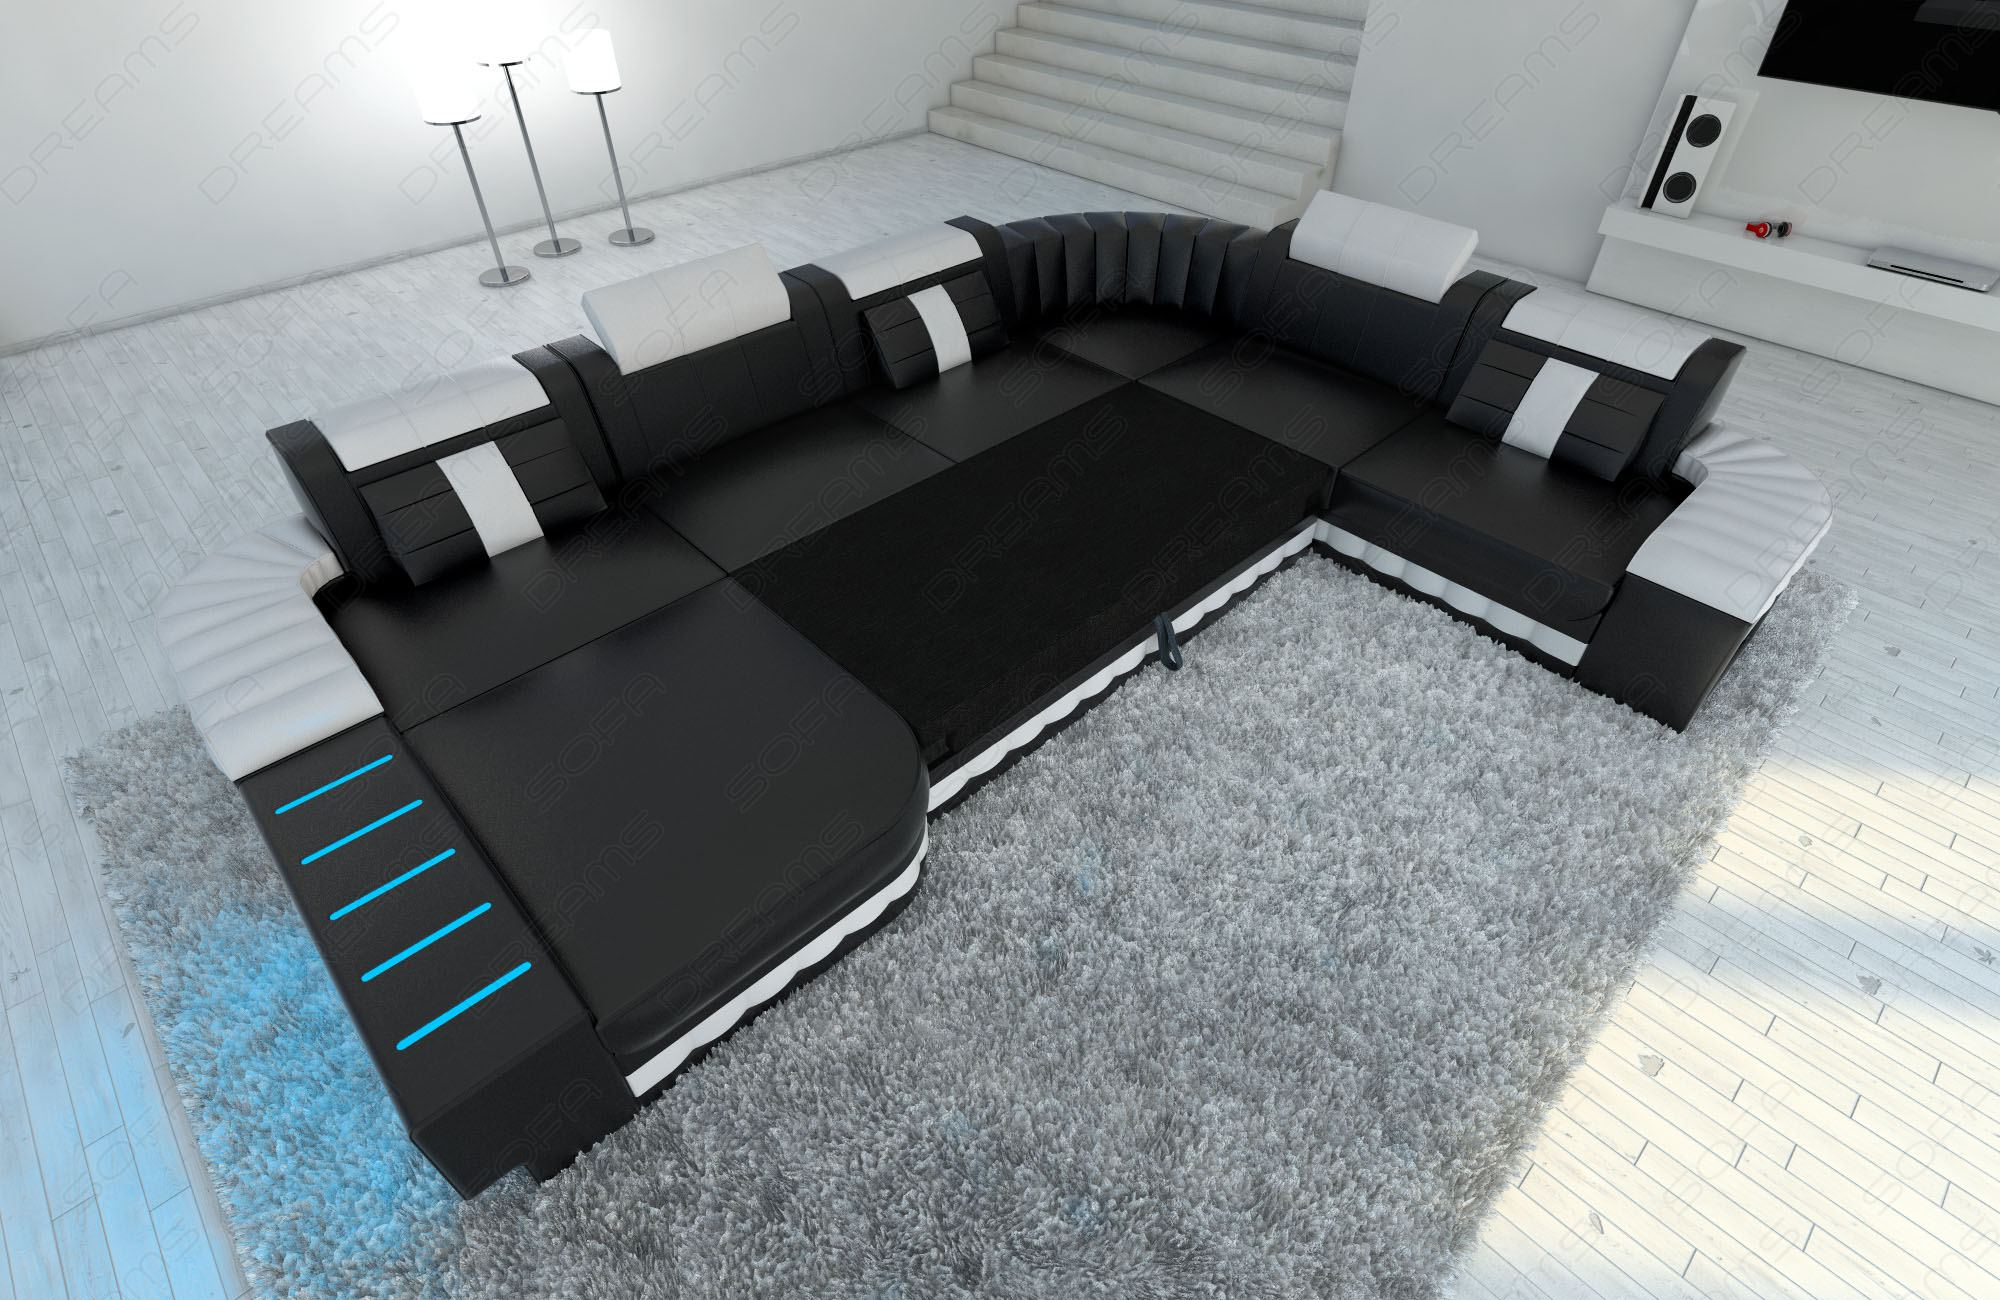 xxl sectional sofa bellagio led u shaped pink black ebay. Black Bedroom Furniture Sets. Home Design Ideas